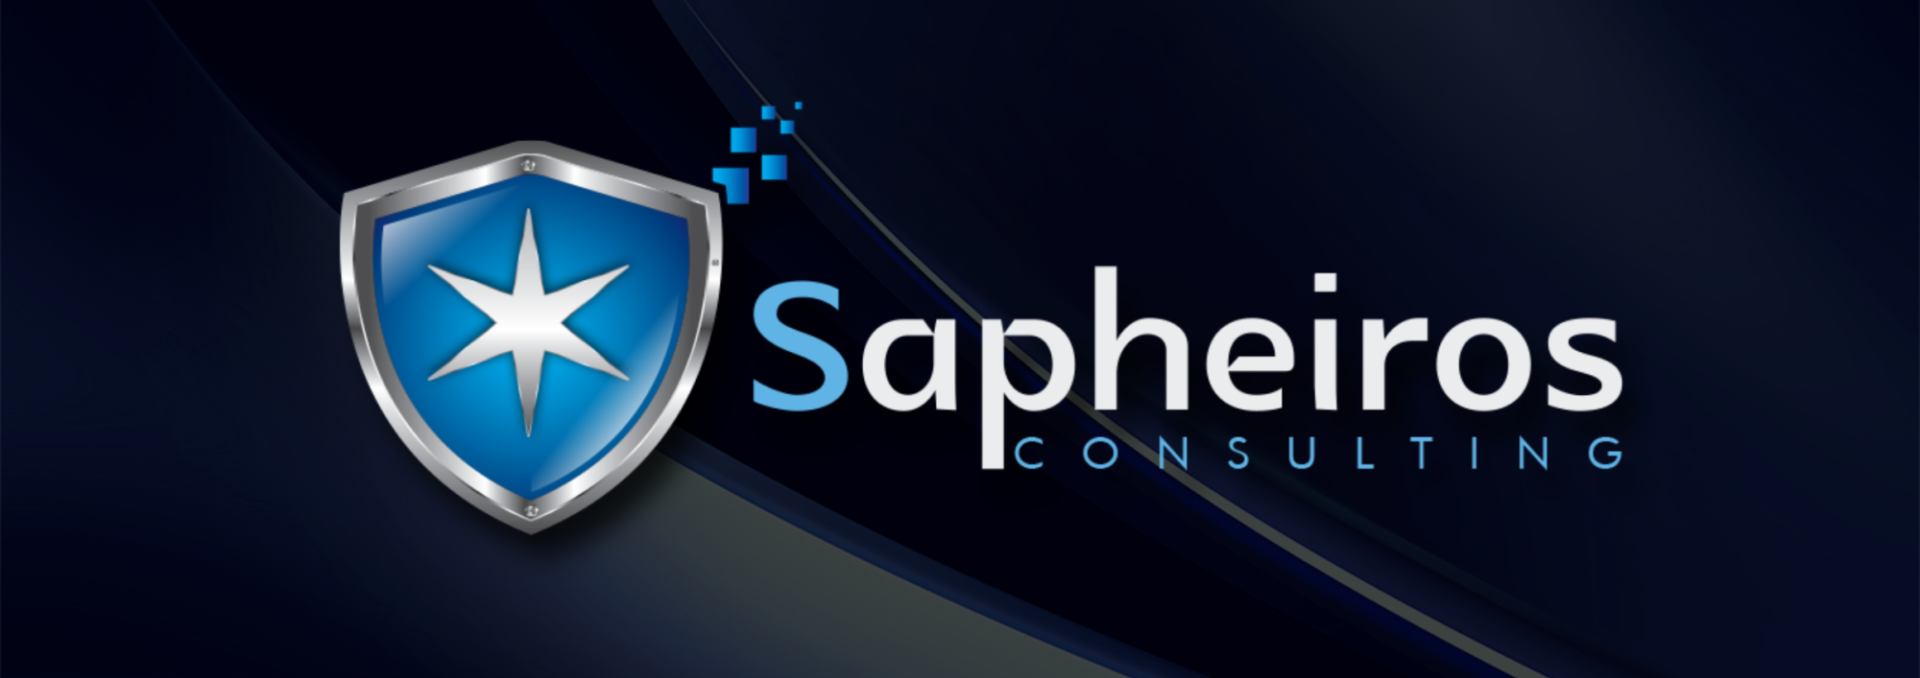 cropped-cropped-cropped-sapheiros-blue-background-1.png